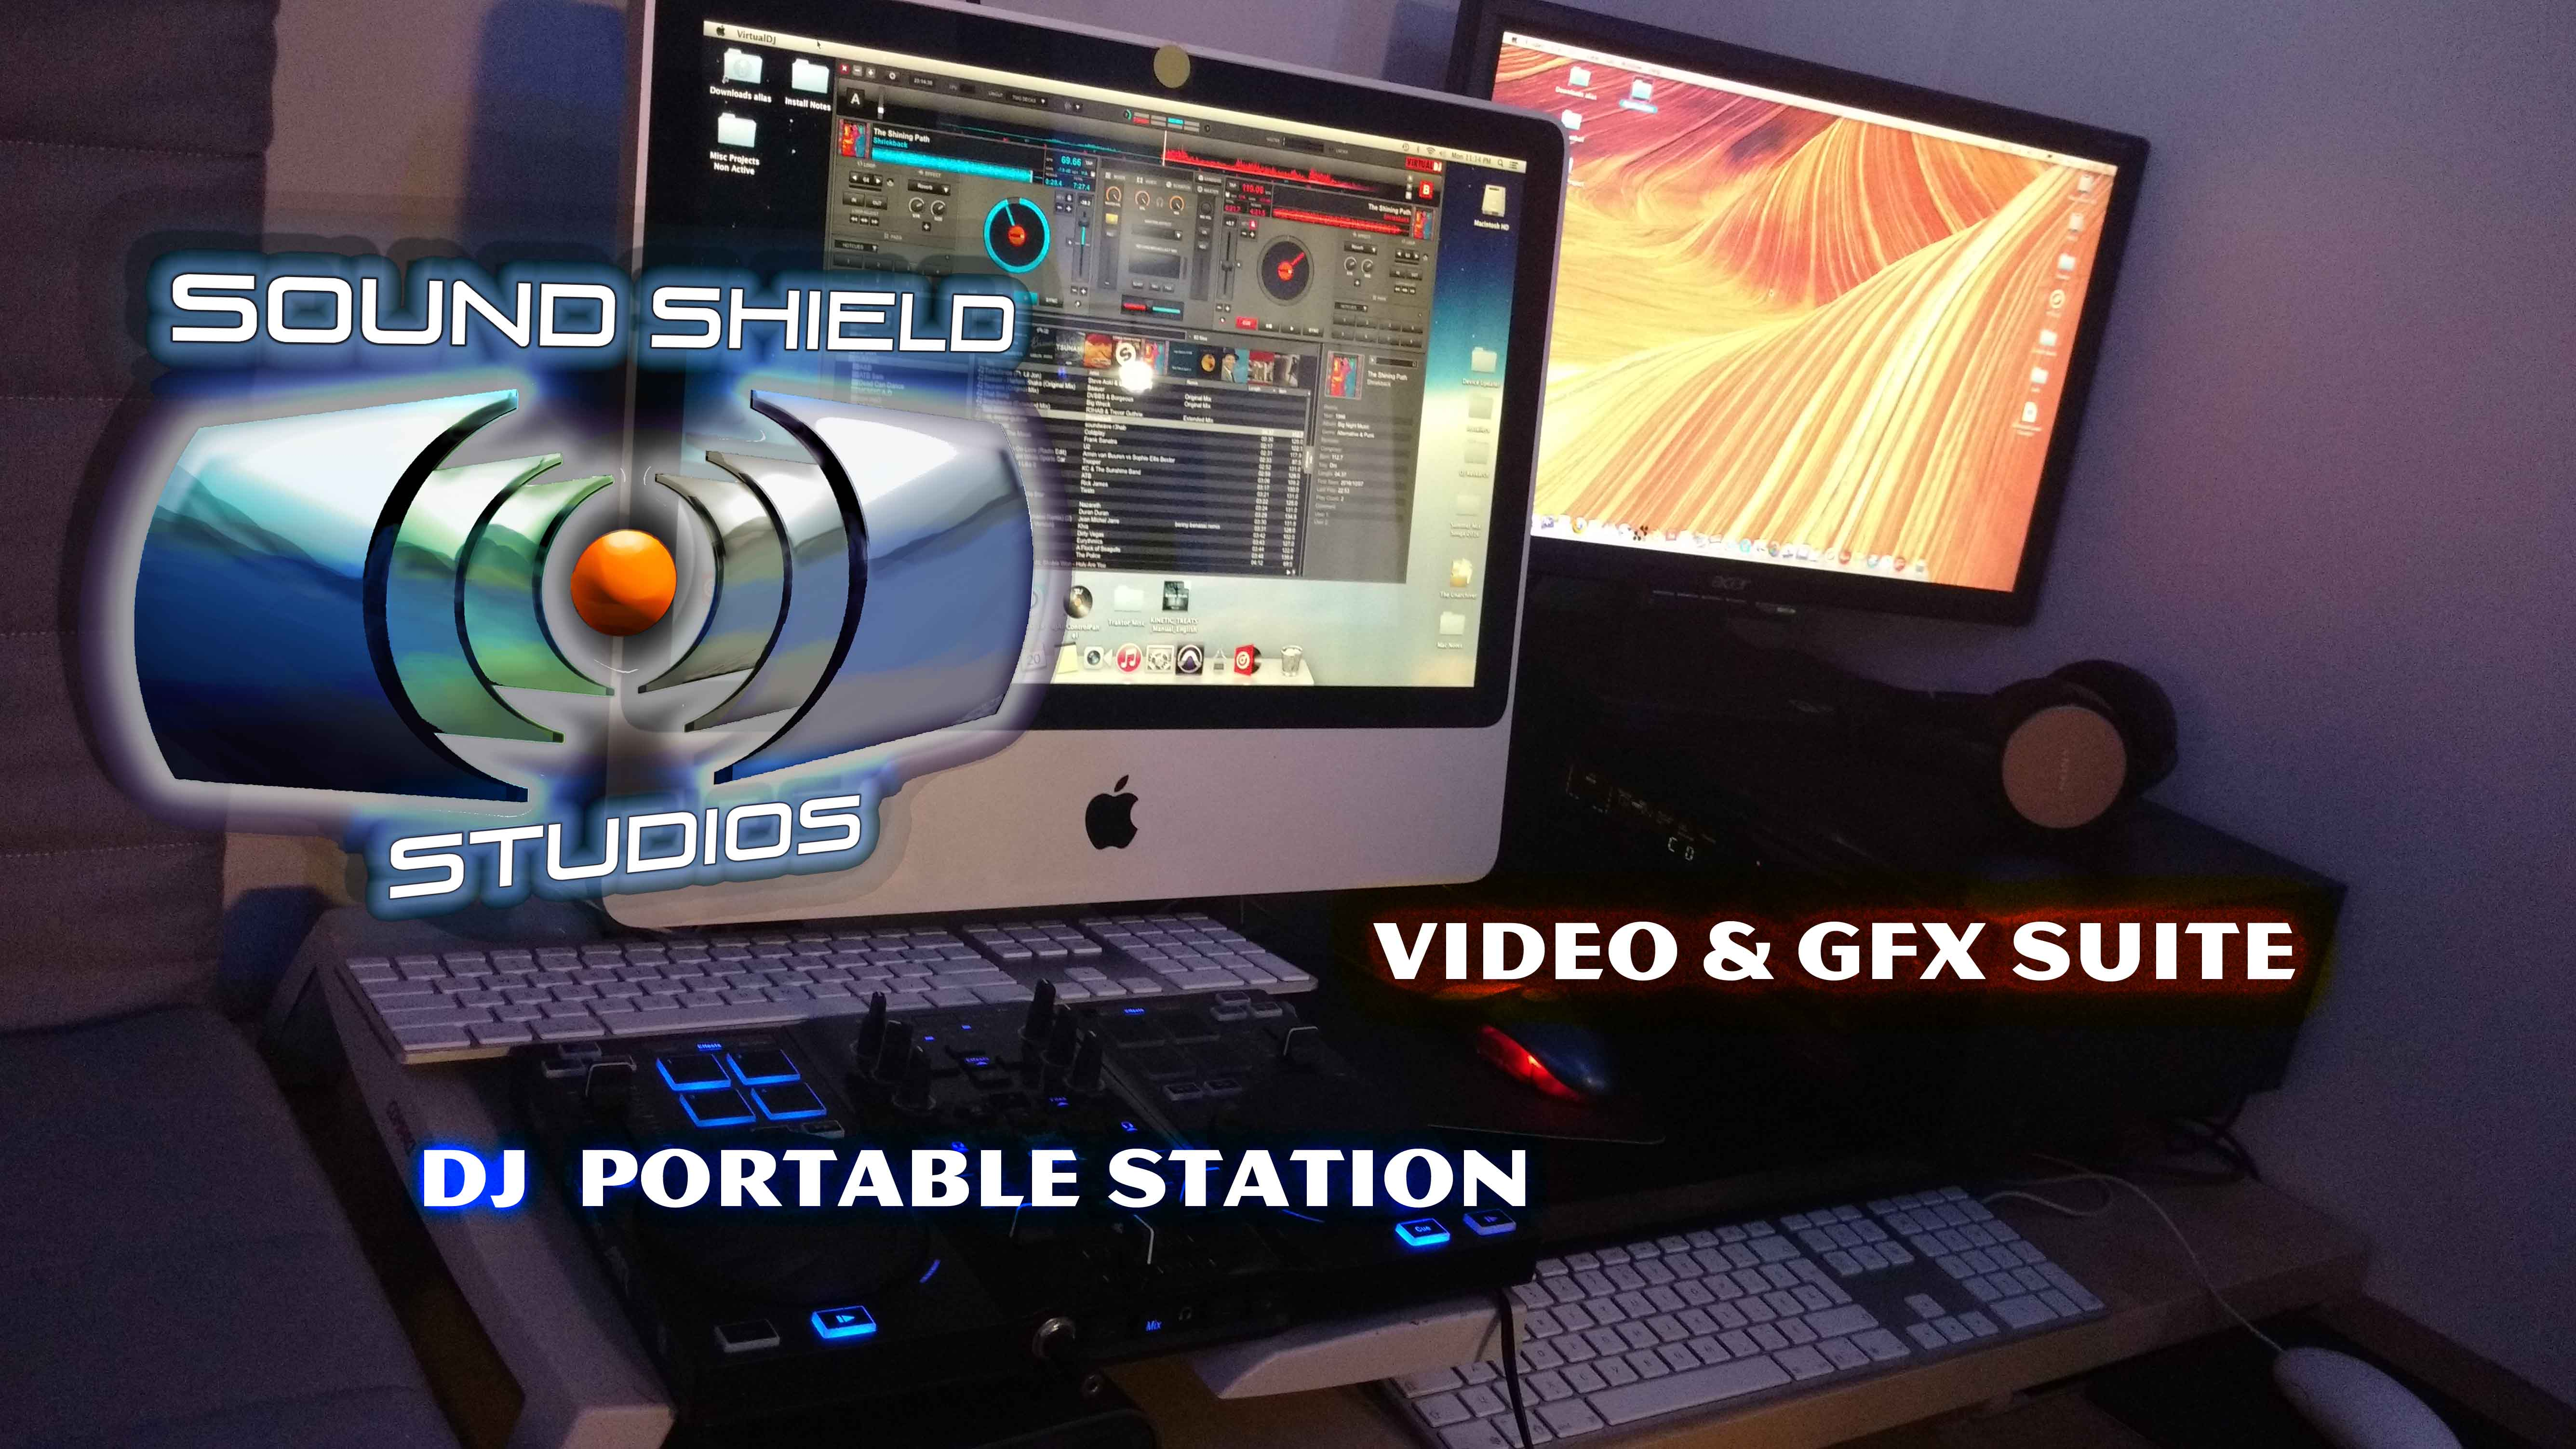 06 DJ and Video GFX